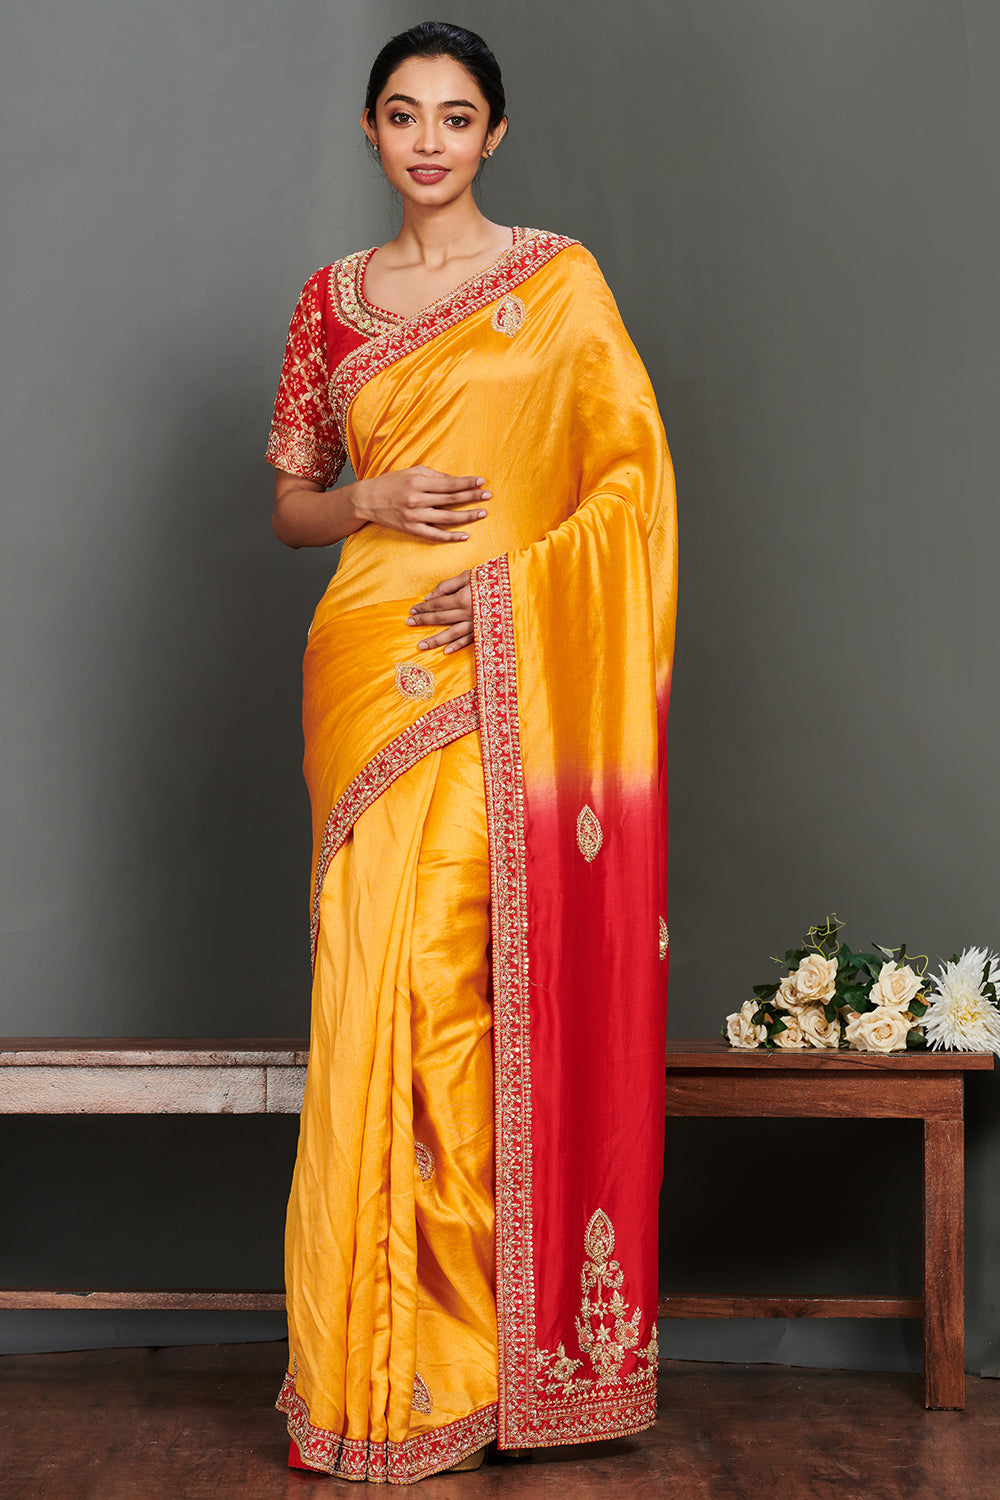 Shop stunning yellow handloom embroidered saree online in USA with red saree blouse. Make a fashion statement on festive occasions and weddings with designer sarees, embroidered saris, handwoven saris, party wear sarees from Pure Elegance Indian fashion store in USA.-full view